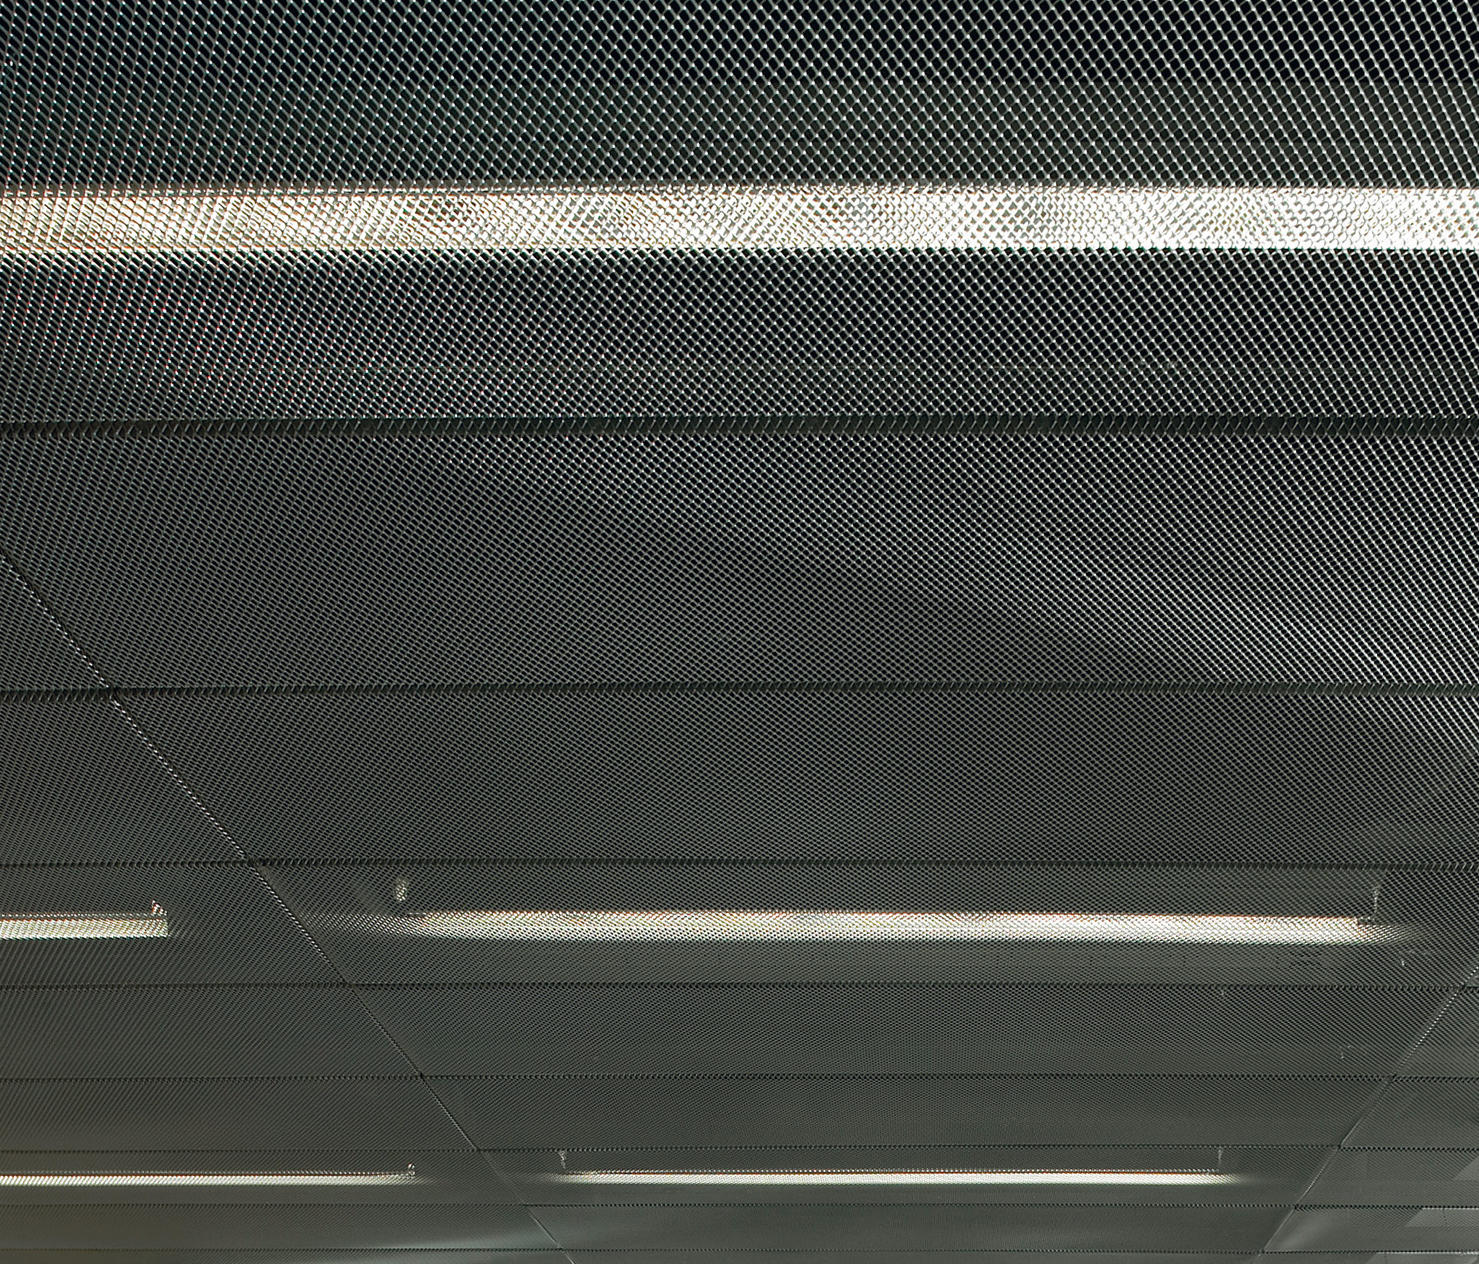 STRETCH METAL CEILING TILES